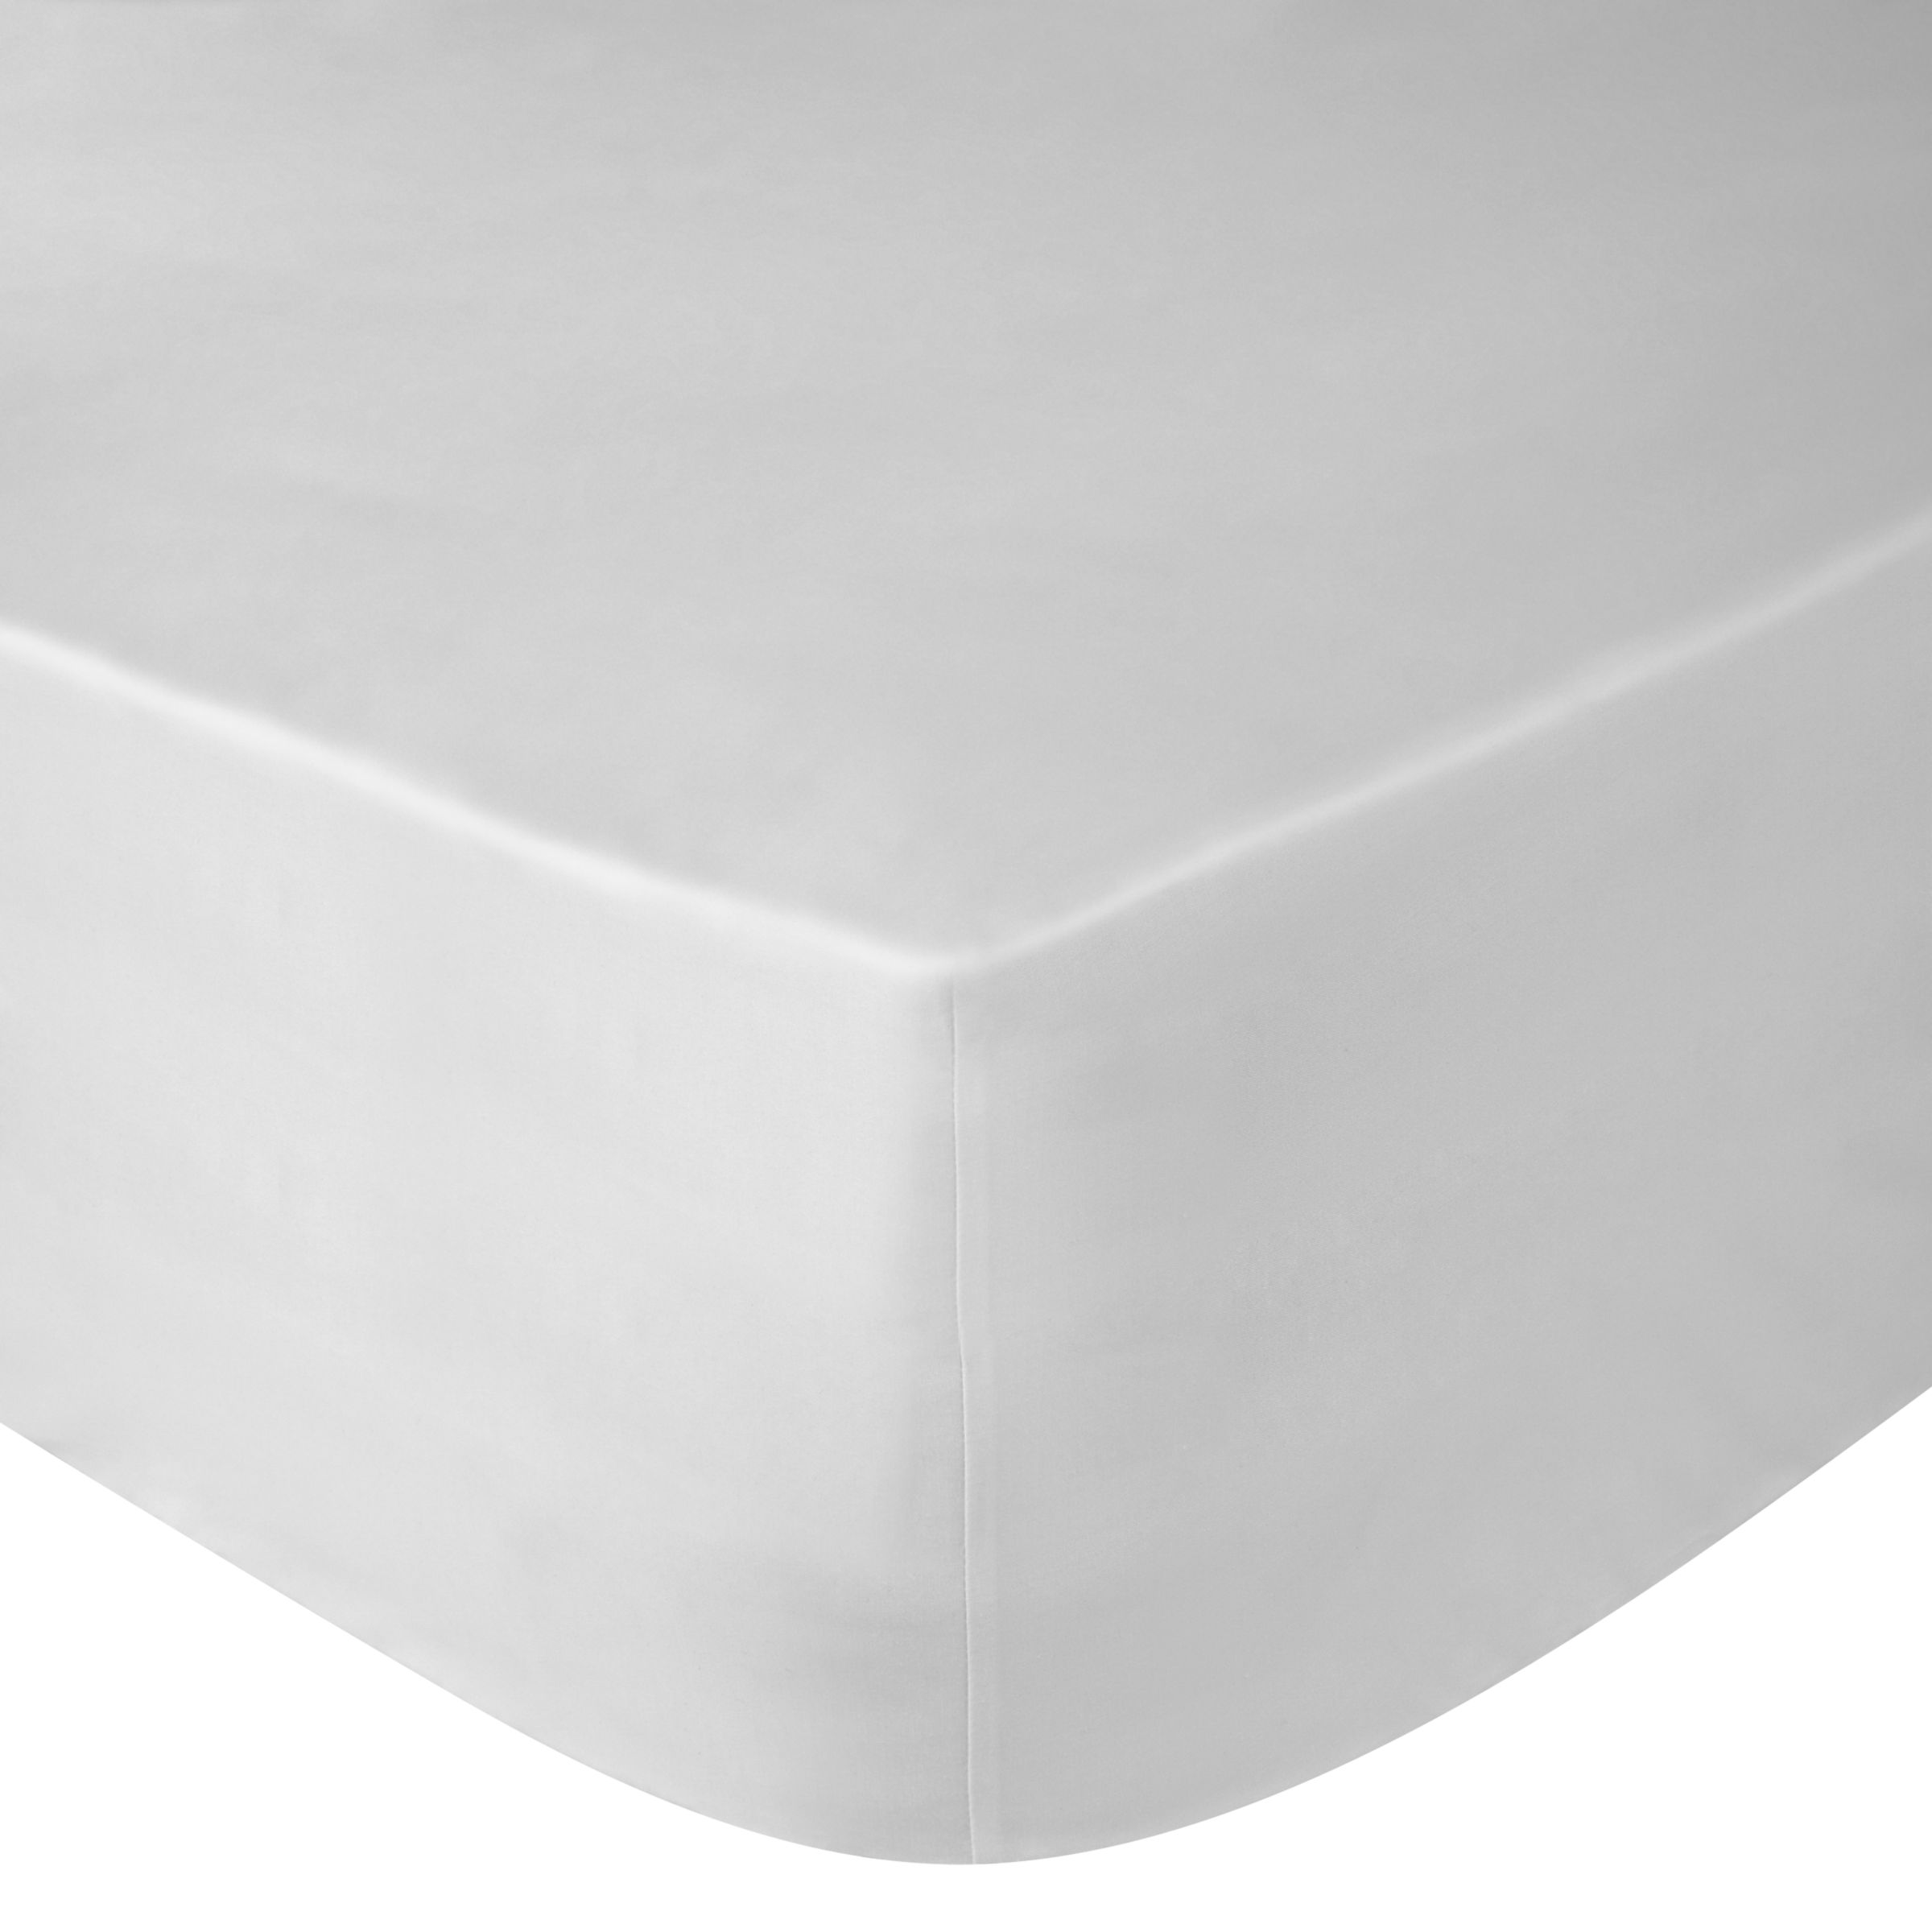 Peter Reed Peter Reed Egyptian Cotton 4 Row Cord Fitted Sheets